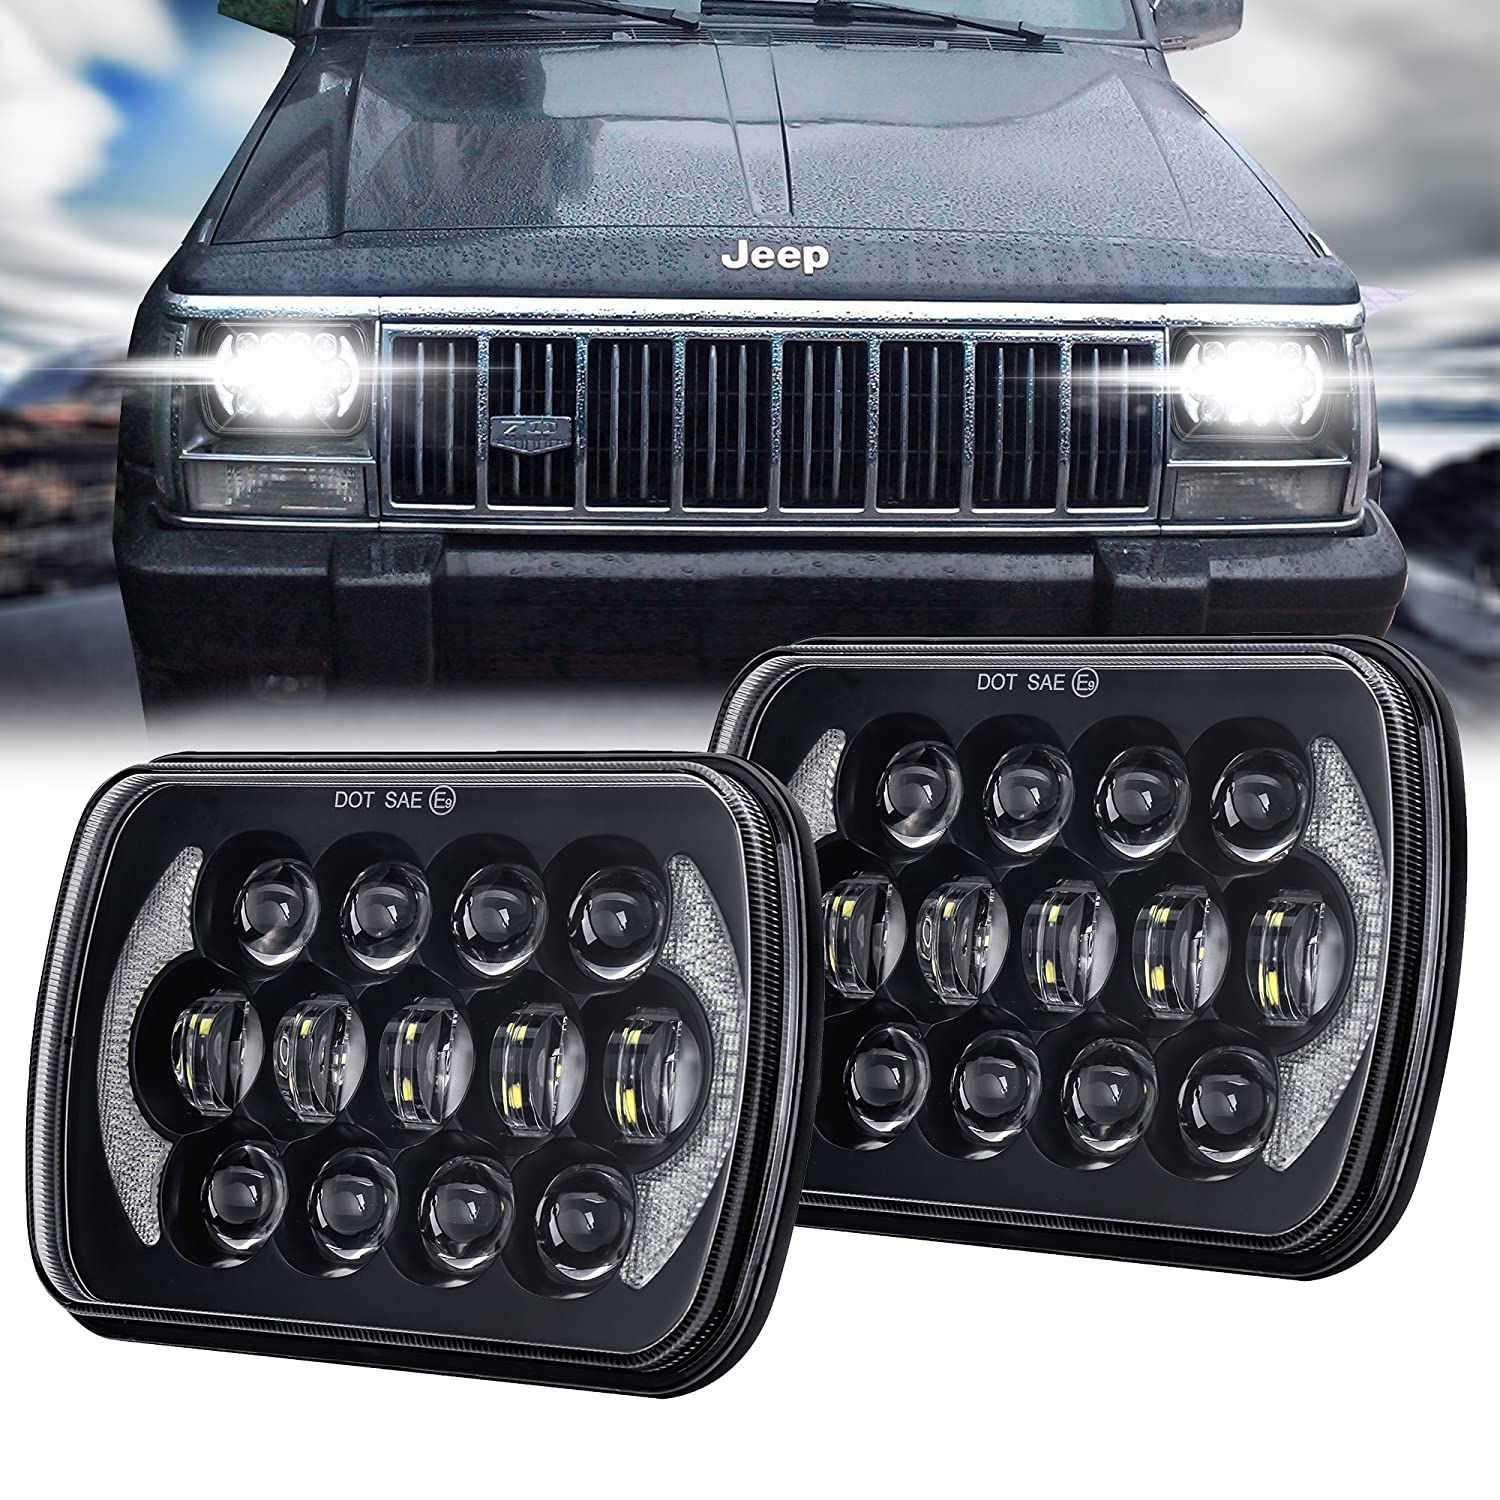 105W 5x7 7x6 Inch High Low Beam Led Headlights for Jeep Wrangler YJ Cherokee XJ H6054 H5054 H6054LL 69822 6052 6053 with Angel Eyes DRL Black Pair